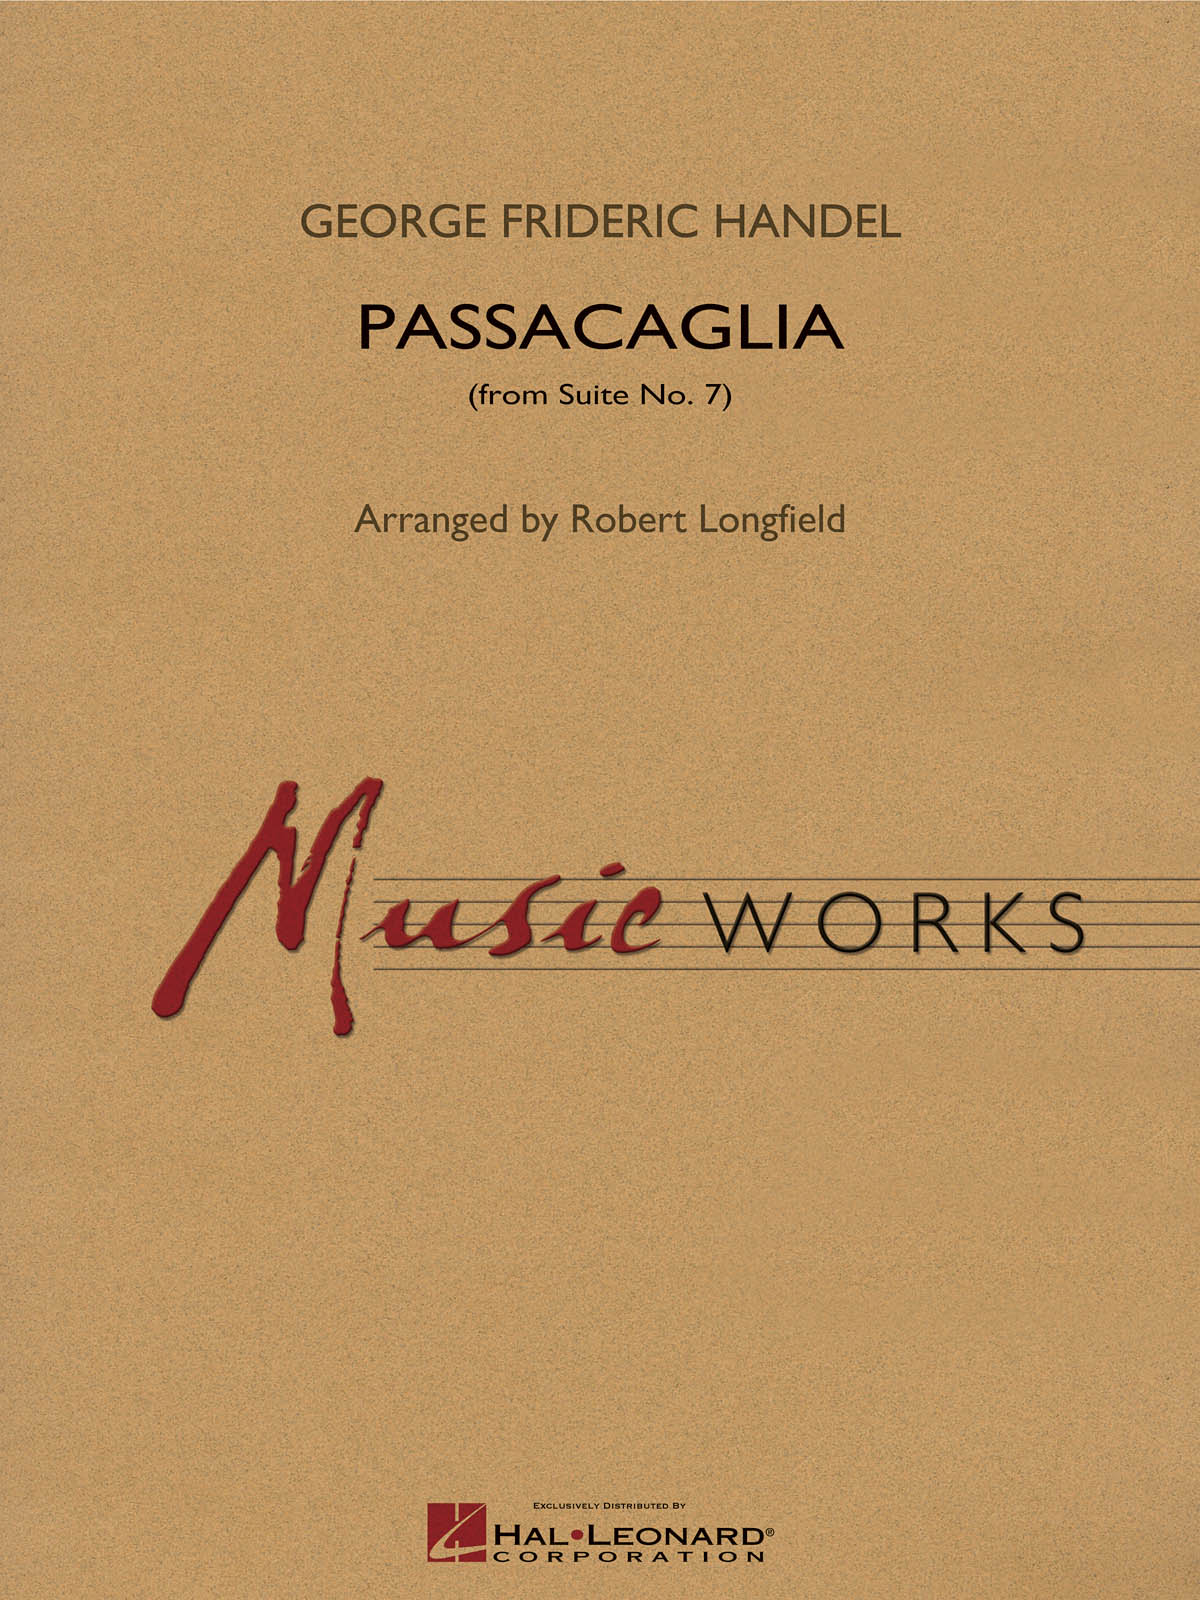 Georg Friedrich Händel: Passacaglia (from Suite No. 7): Concert Band: Score &